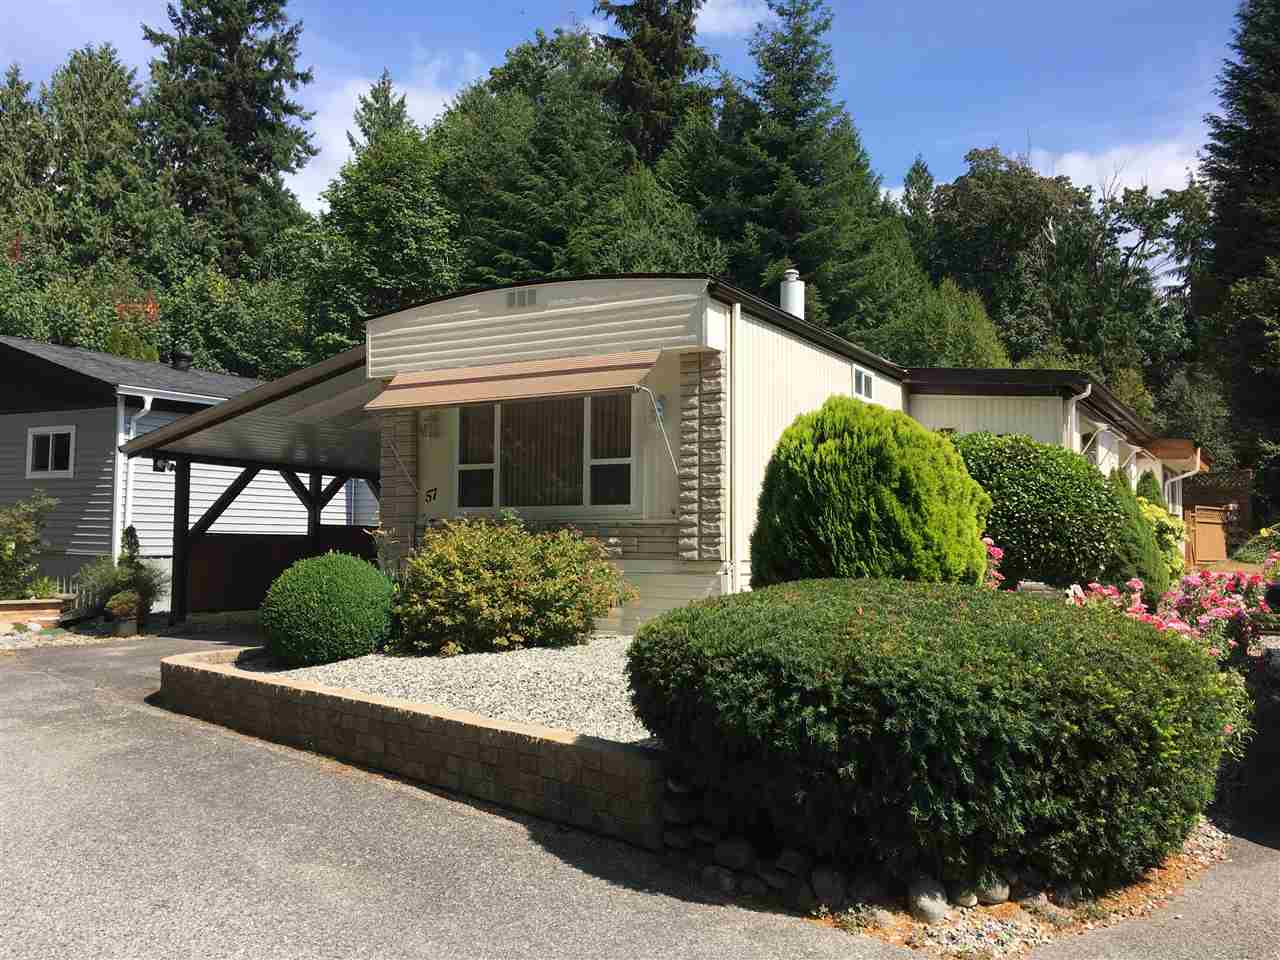 4496 SUNSHINE COAST HIGHWAY 57, Sechelt, BC V0N 3A1